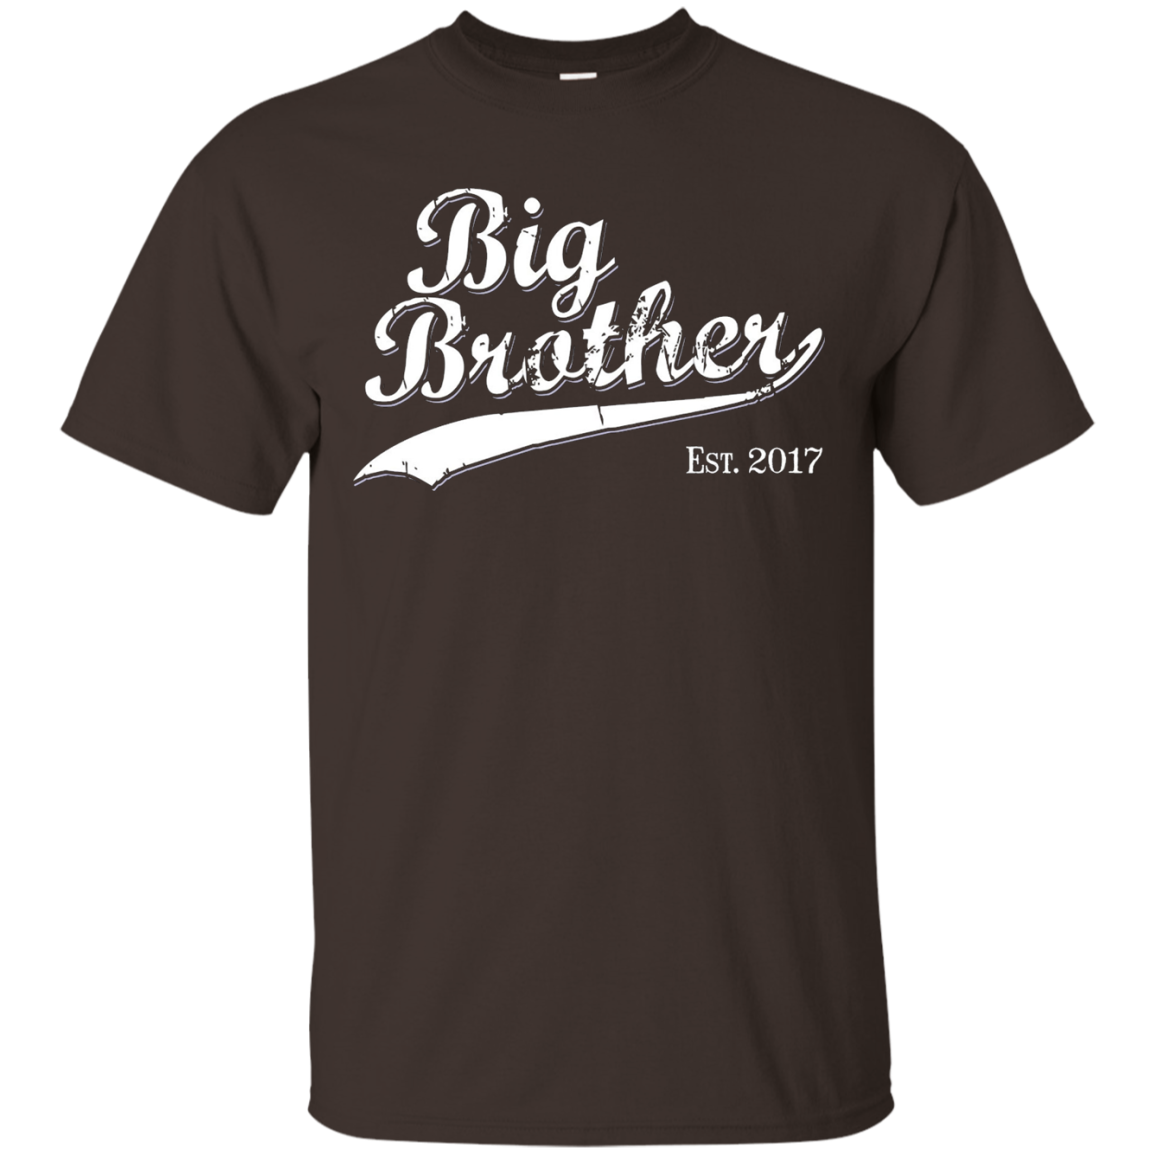 Big Brother Est 2017 Gift T-shirt for New Brother Tshirt